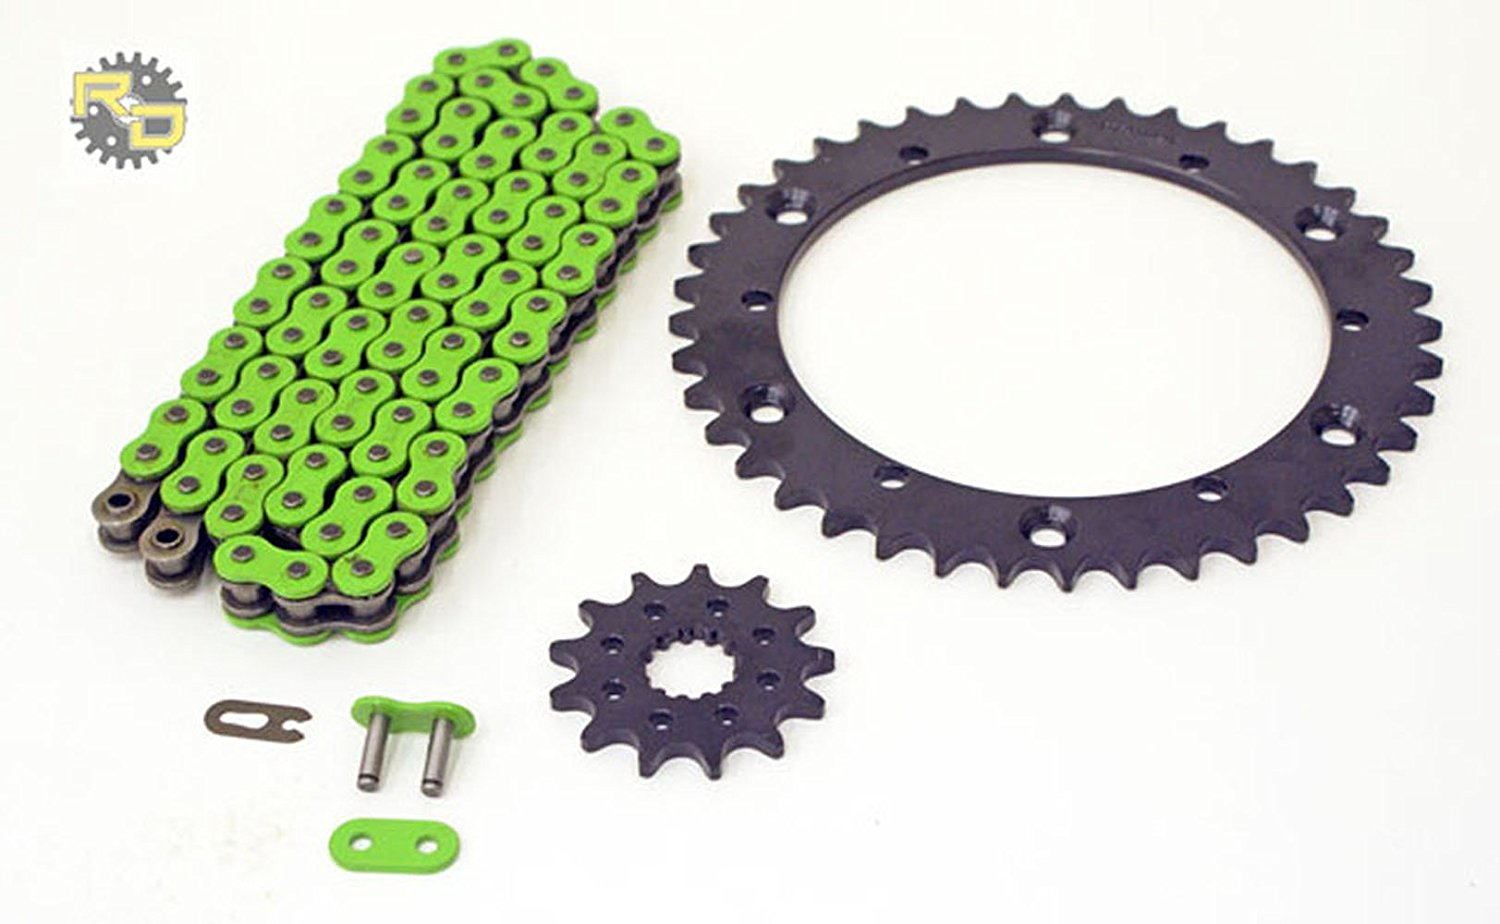 1991-1992 Honda Fourtrax 250 TRX250R Chain and Sprocket Kit Heavy Duty Green